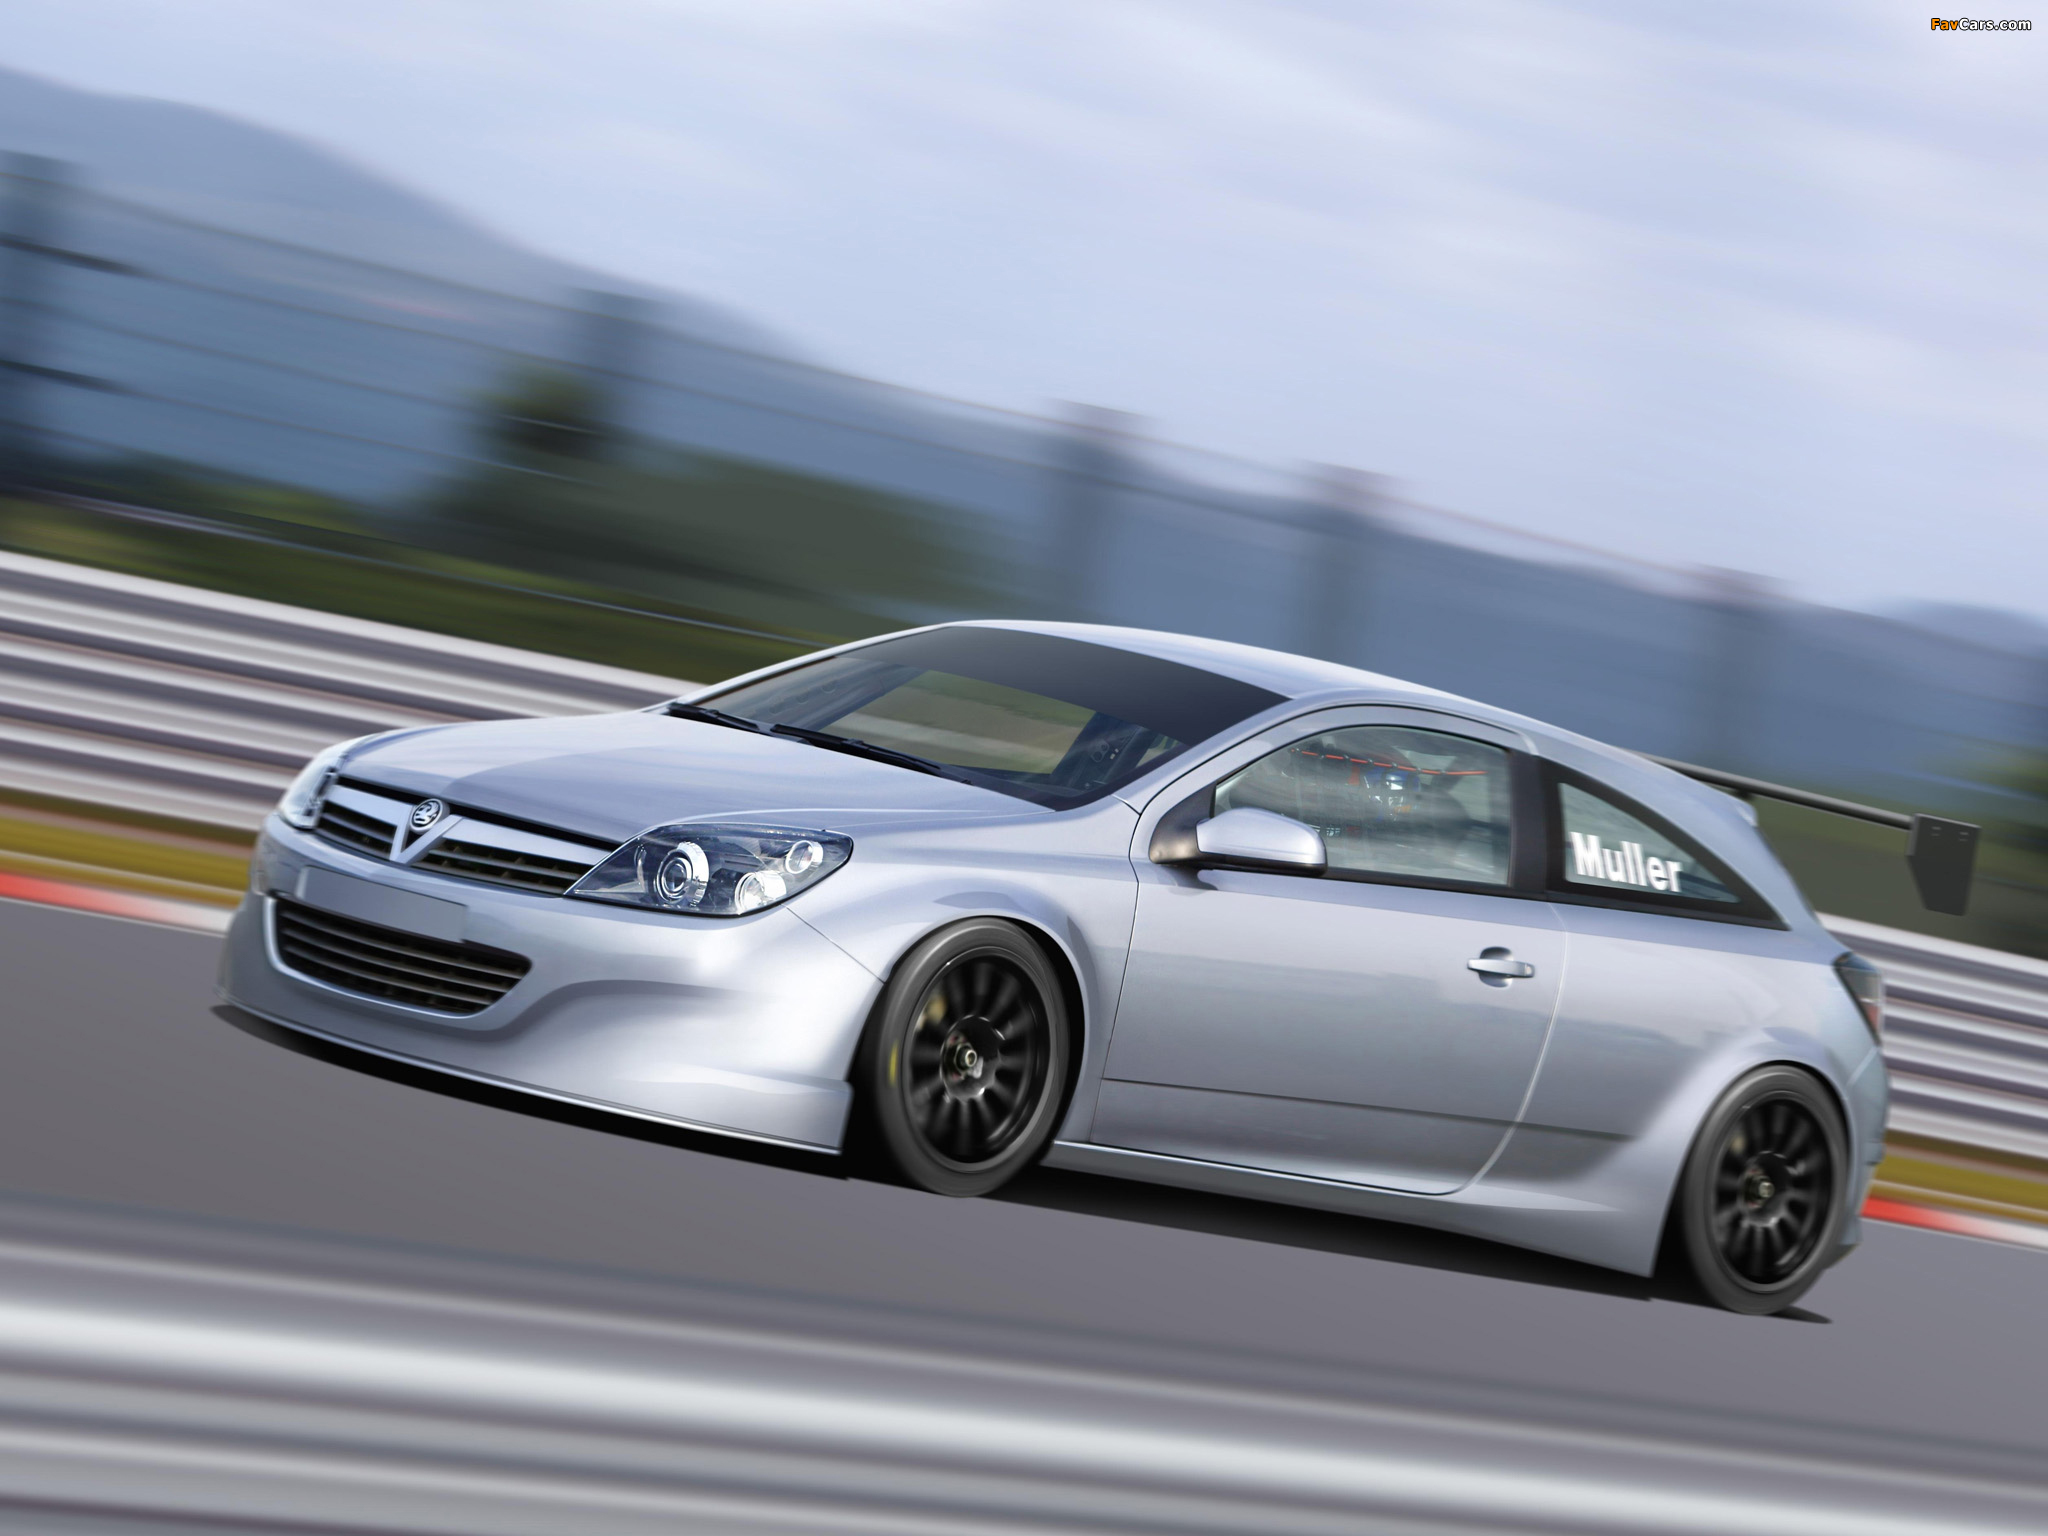 Vauxhall BTCC Astra Sport Hatch Concept 2005 wallpapers (2048 x 1536)